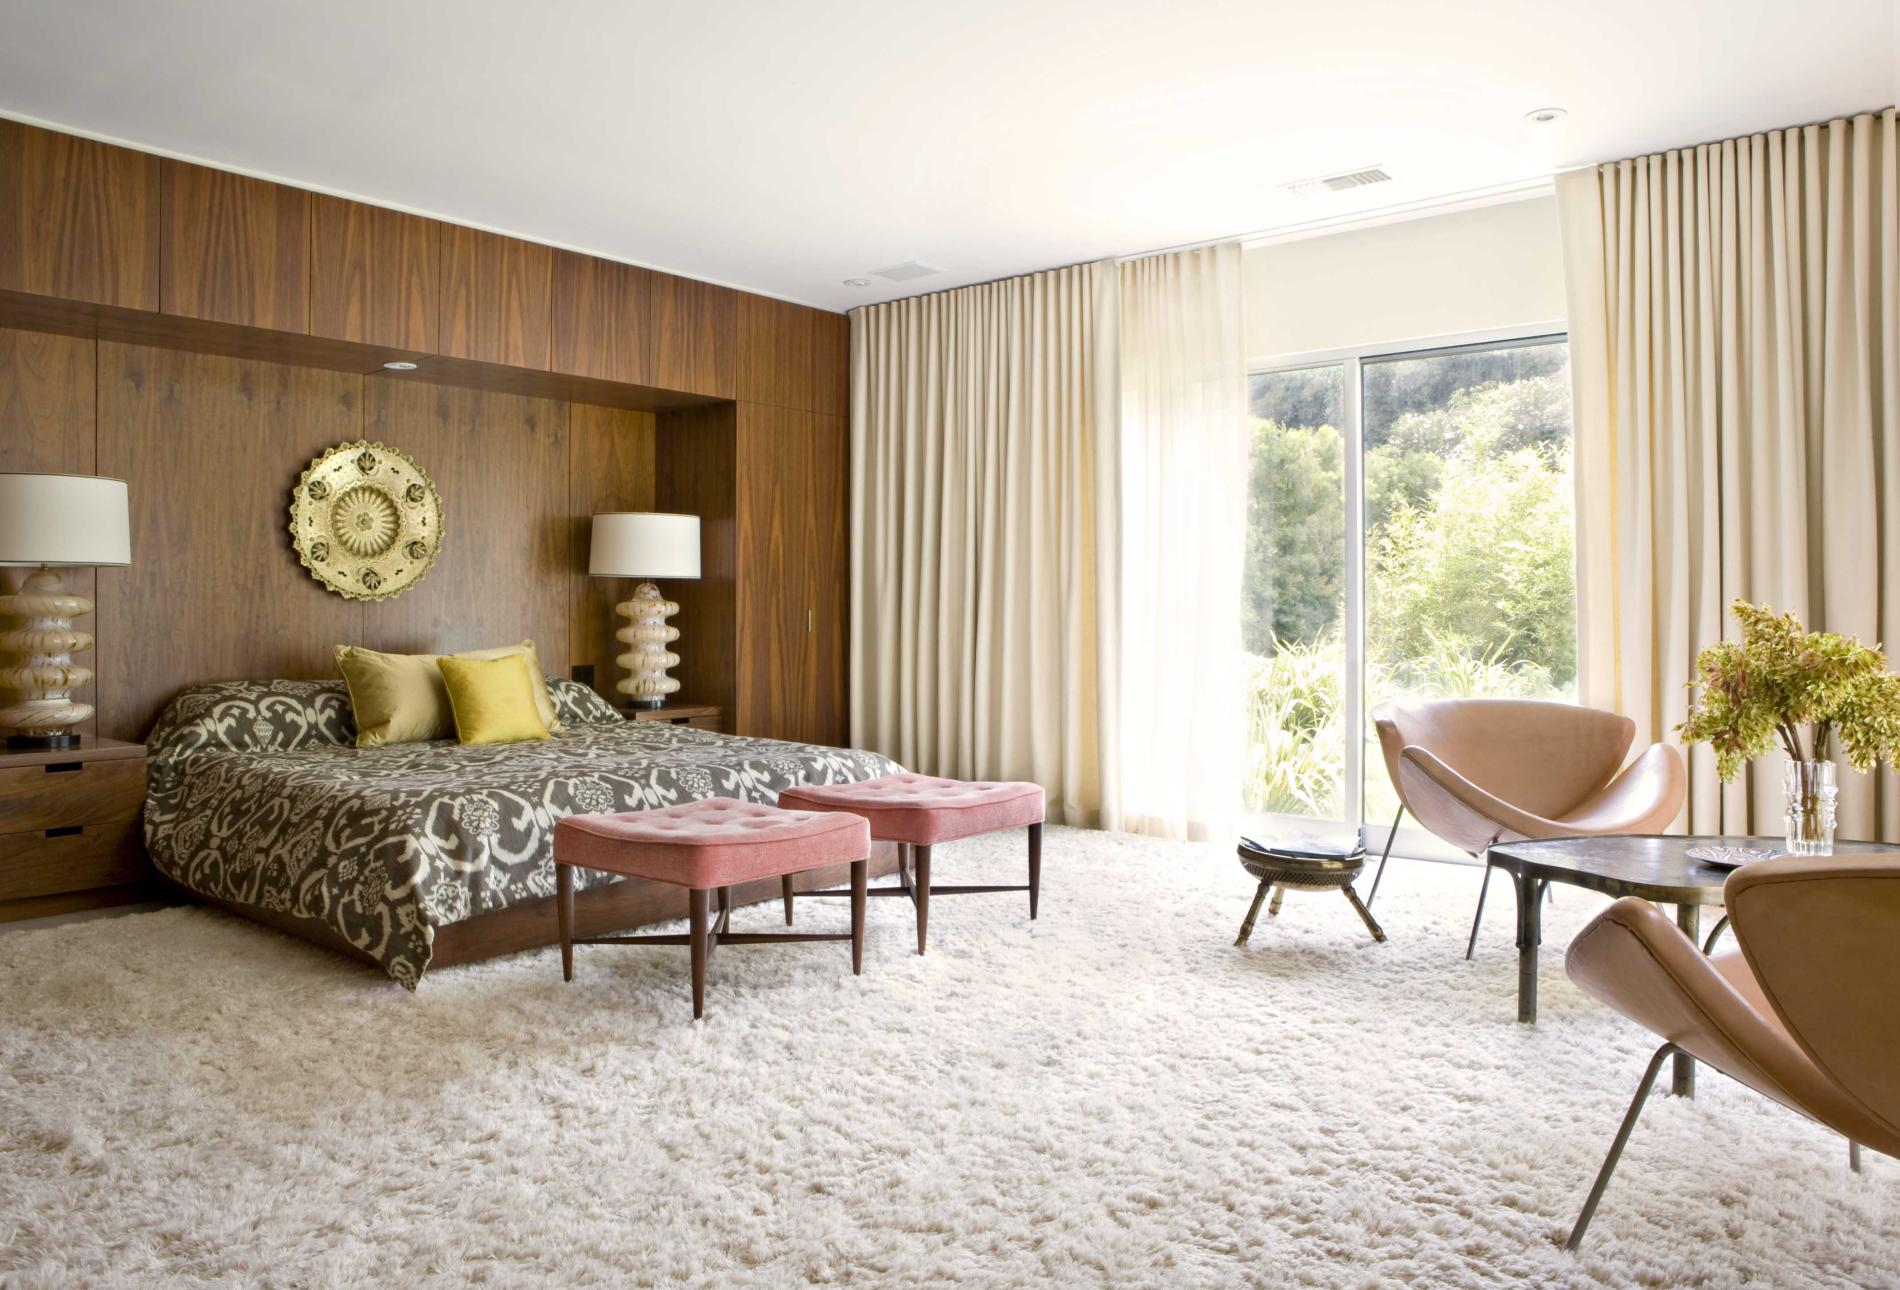 Rugs  Carpet  Carpeting Interior Design Ideas  Nice modern design of the  country house. Rugs  Carpet  Carpeting Interior Design Ideas